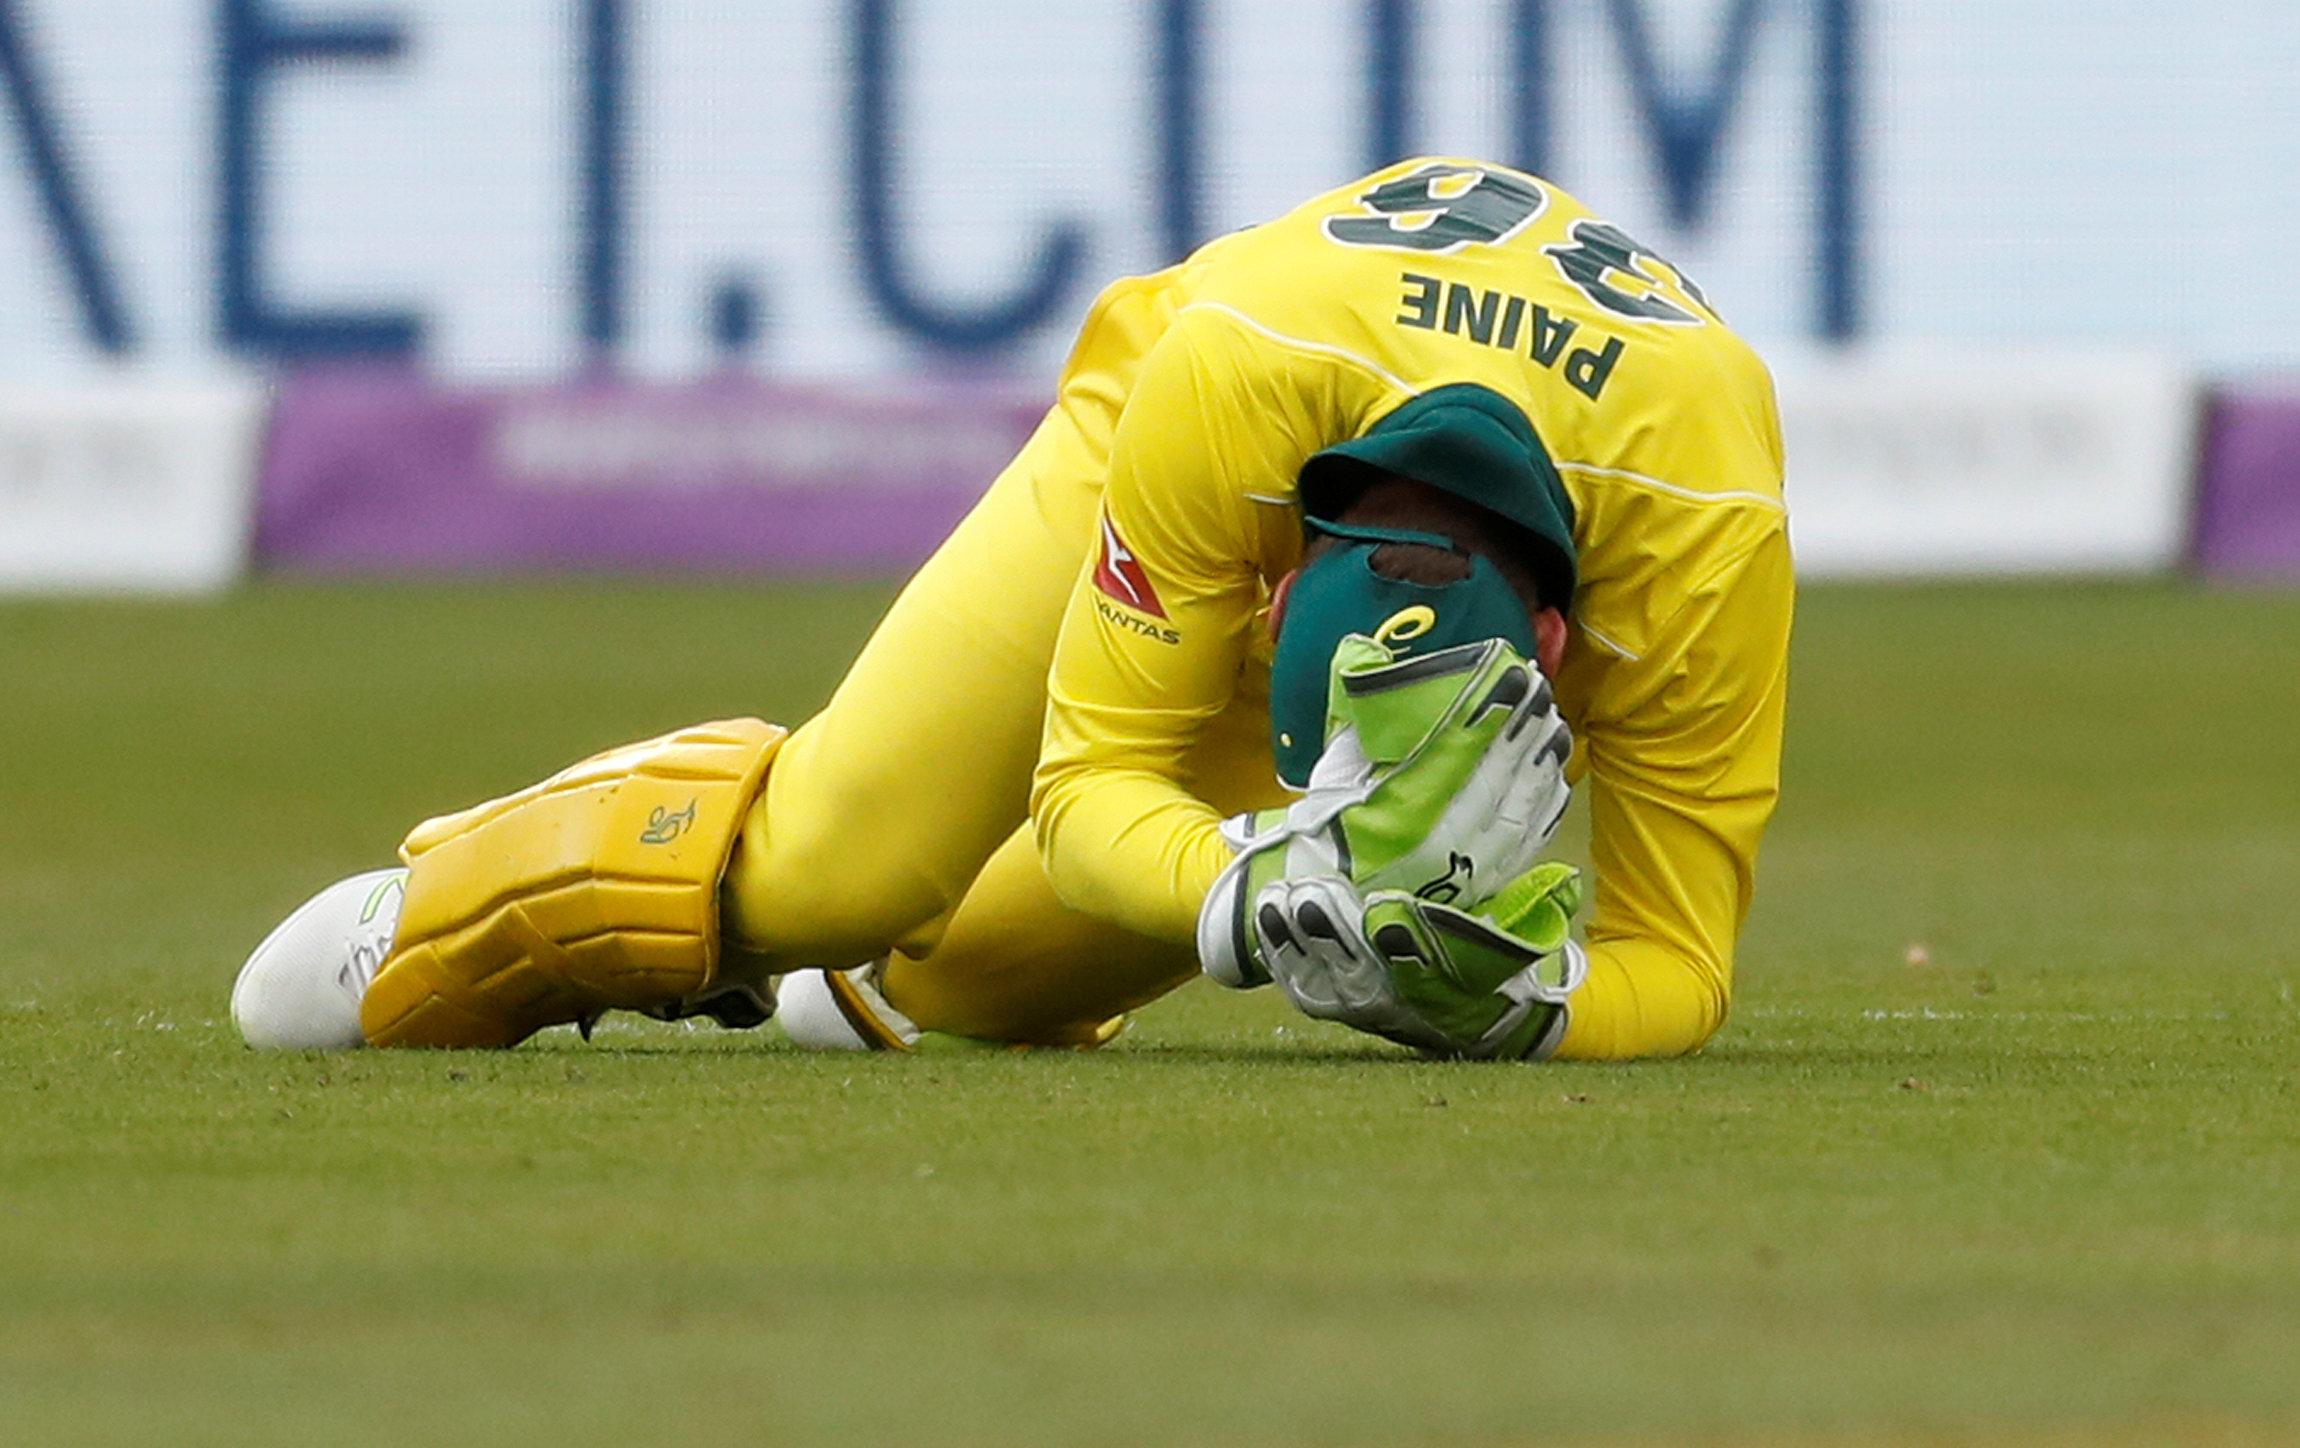 Tim Paine looked in agony after he was thumped in the face by a hopping ball